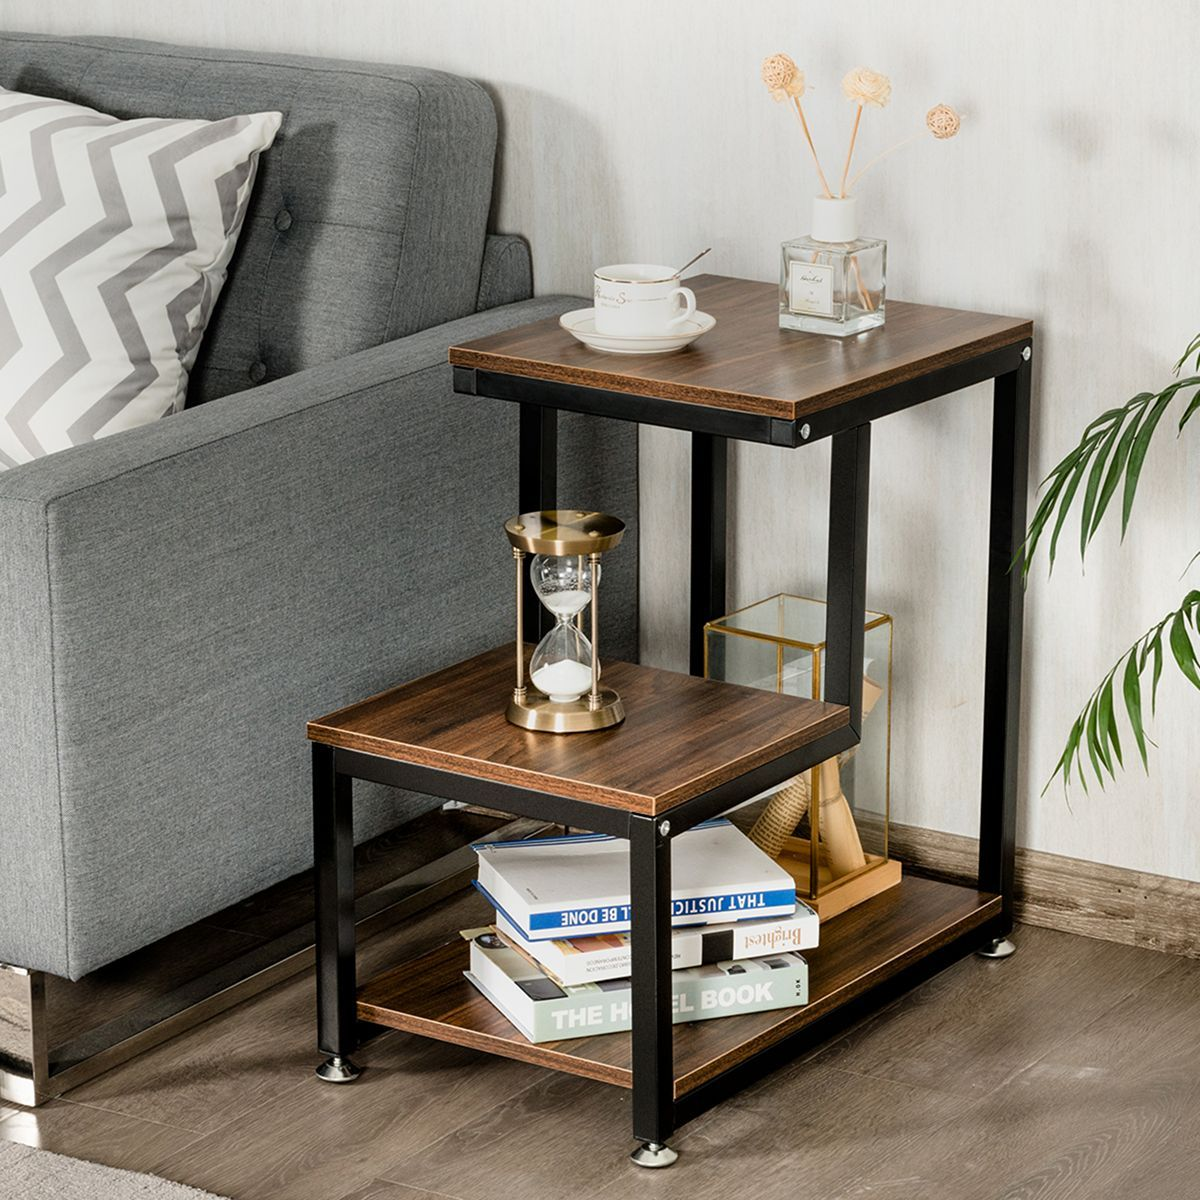 Amazing Living Room Side Table Design Ideas To Complement Your Decoration Living Room Side Table Sofa End Tables Side Table Design